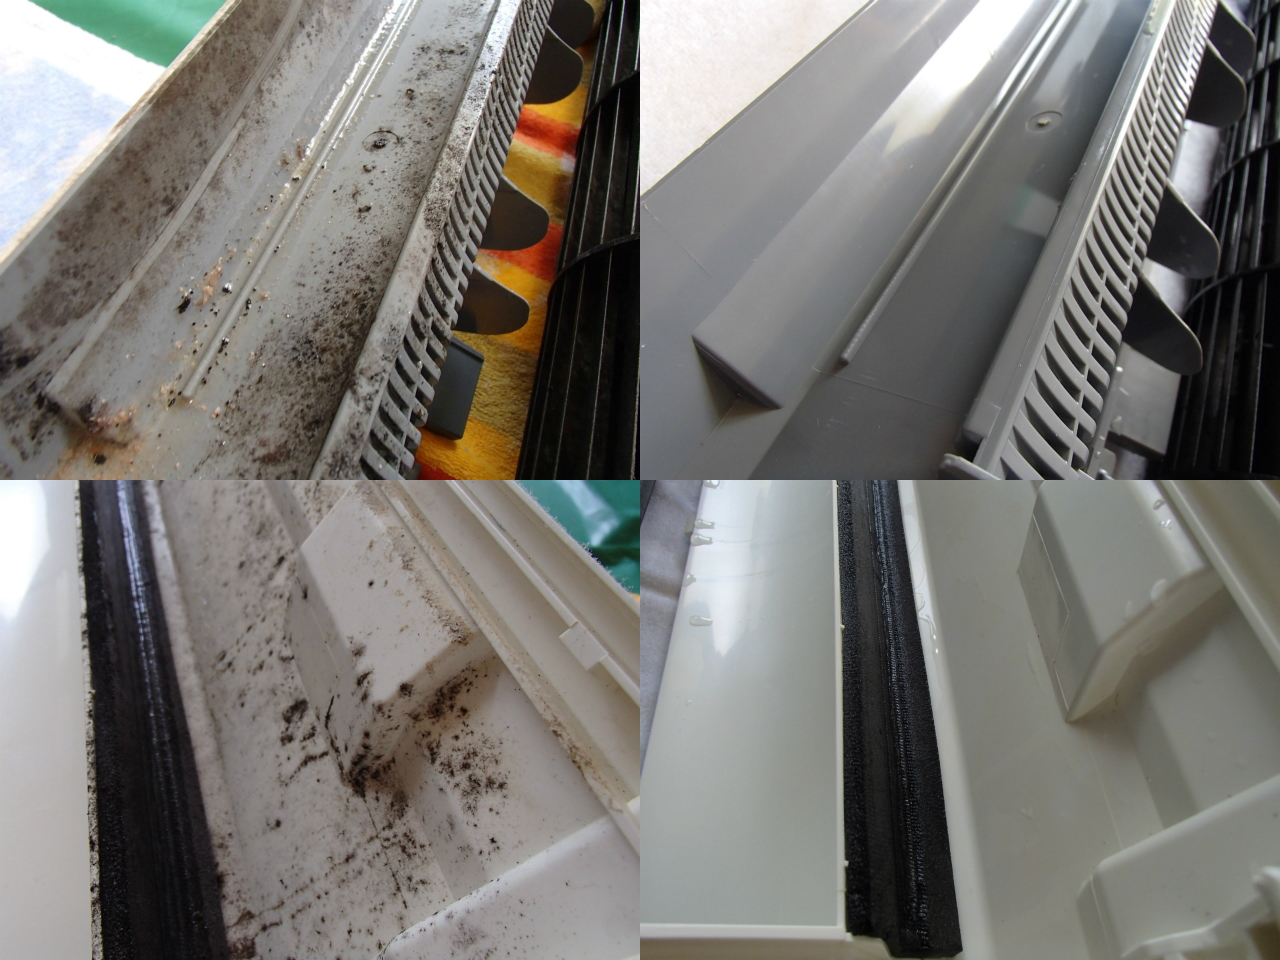 http://ajras.net/images/120904-aircon2.jpg